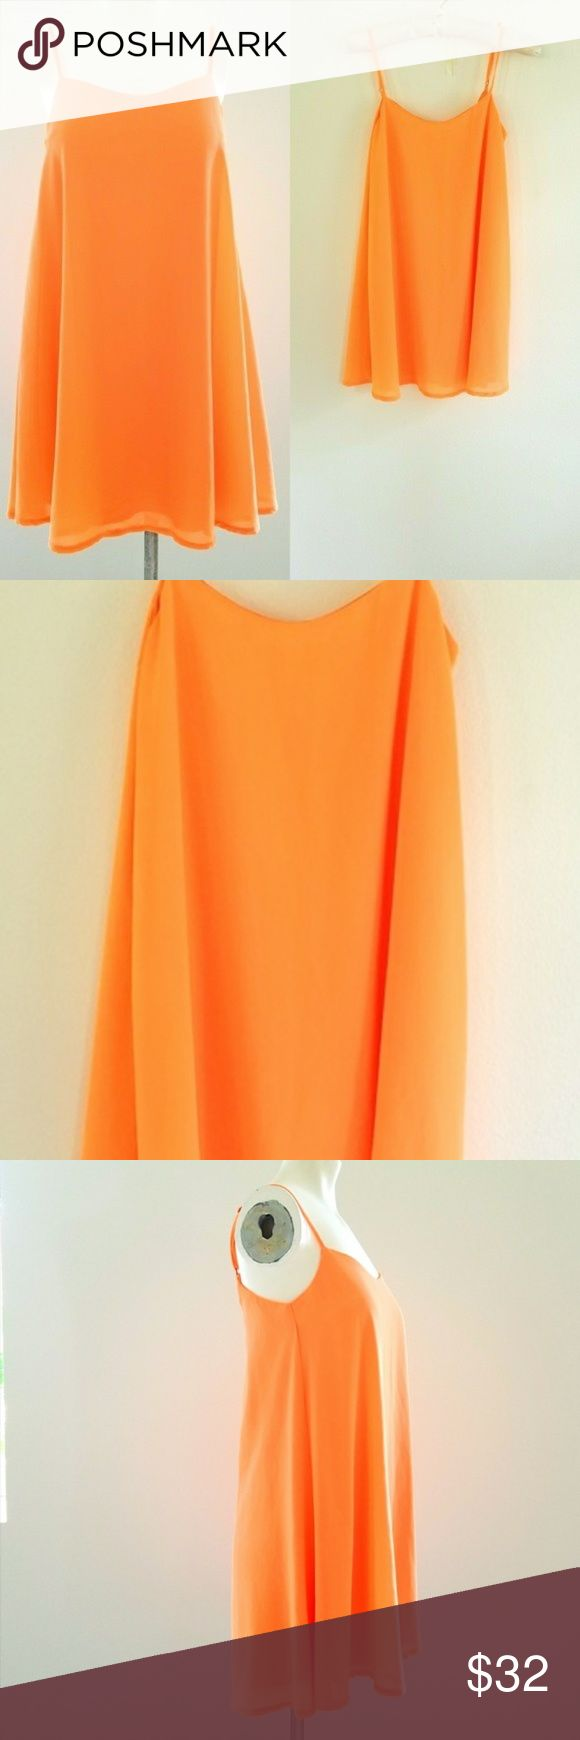 Ally B] Orange Tank Dress❤ Size 4❤ Preowned Excellent Condition Ally B] Orange Strapless Dress with zipper in the back. The strapless are adjustable ❤ Size 2❤ Wonderful for Summer Day.❤ Material  ❤100% Polyester ❤ Measurement ❤25 inches long❤ ❤16 inches from arm pit to arm pit❤  $32 Ally B Dresses Mini #tankdress